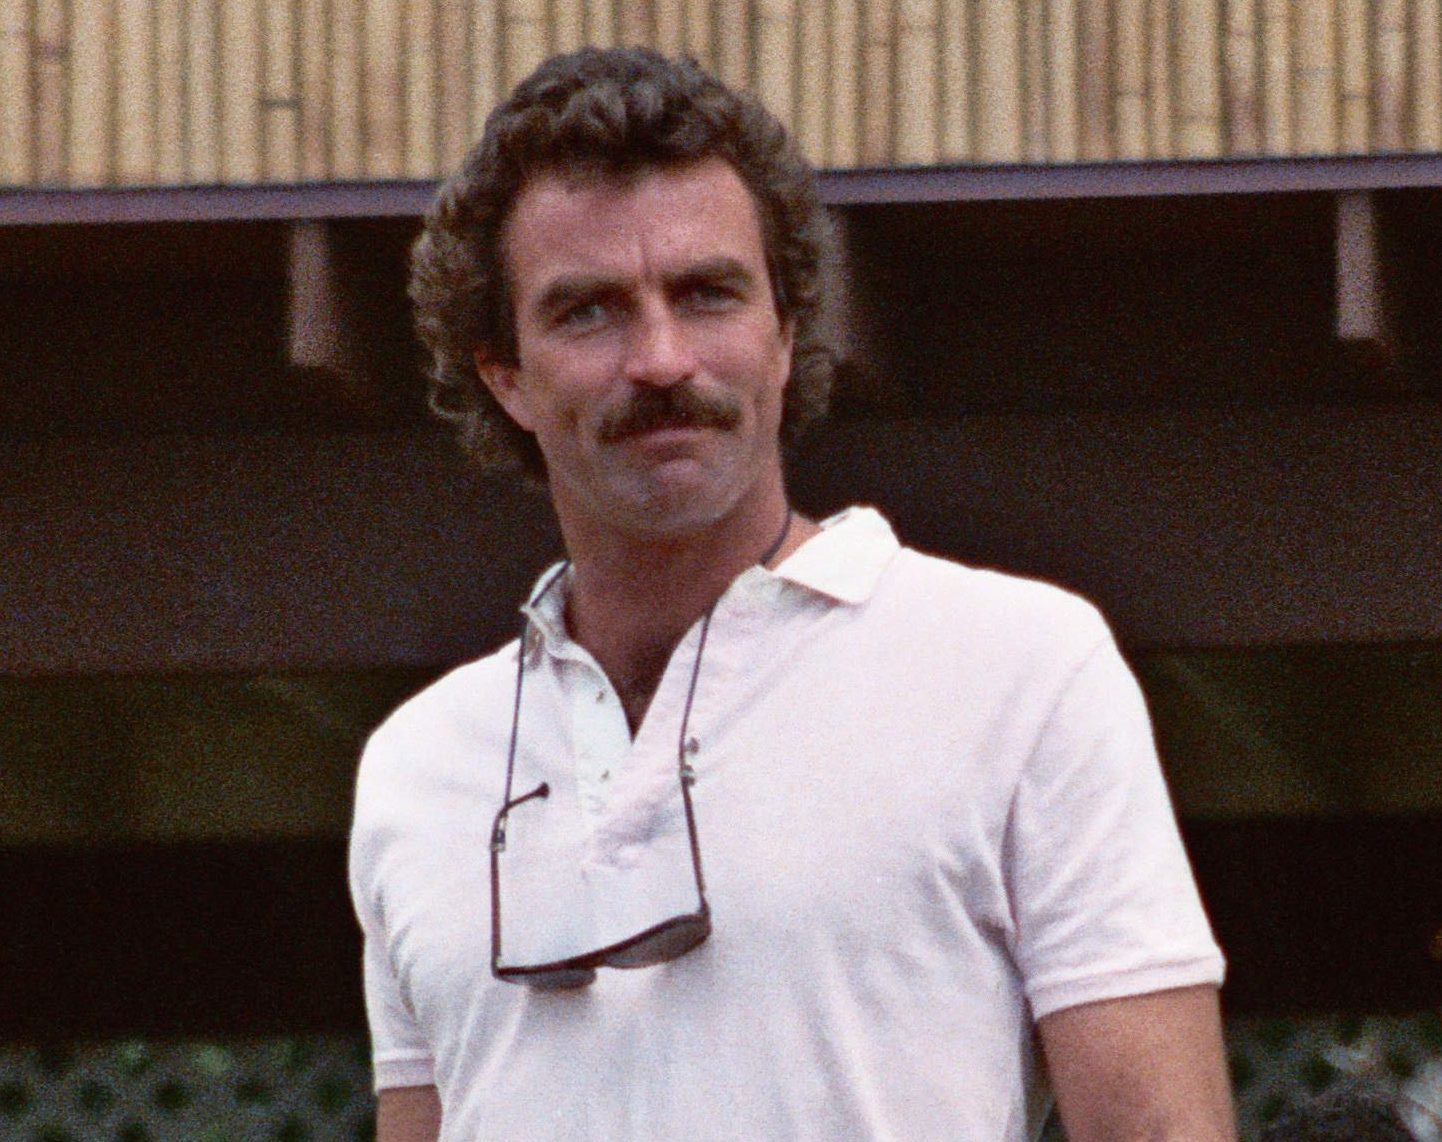 4508361891 4bda8f8a46 o e1614699773651 25 Things You Didn't Know About Magnum, P.I.